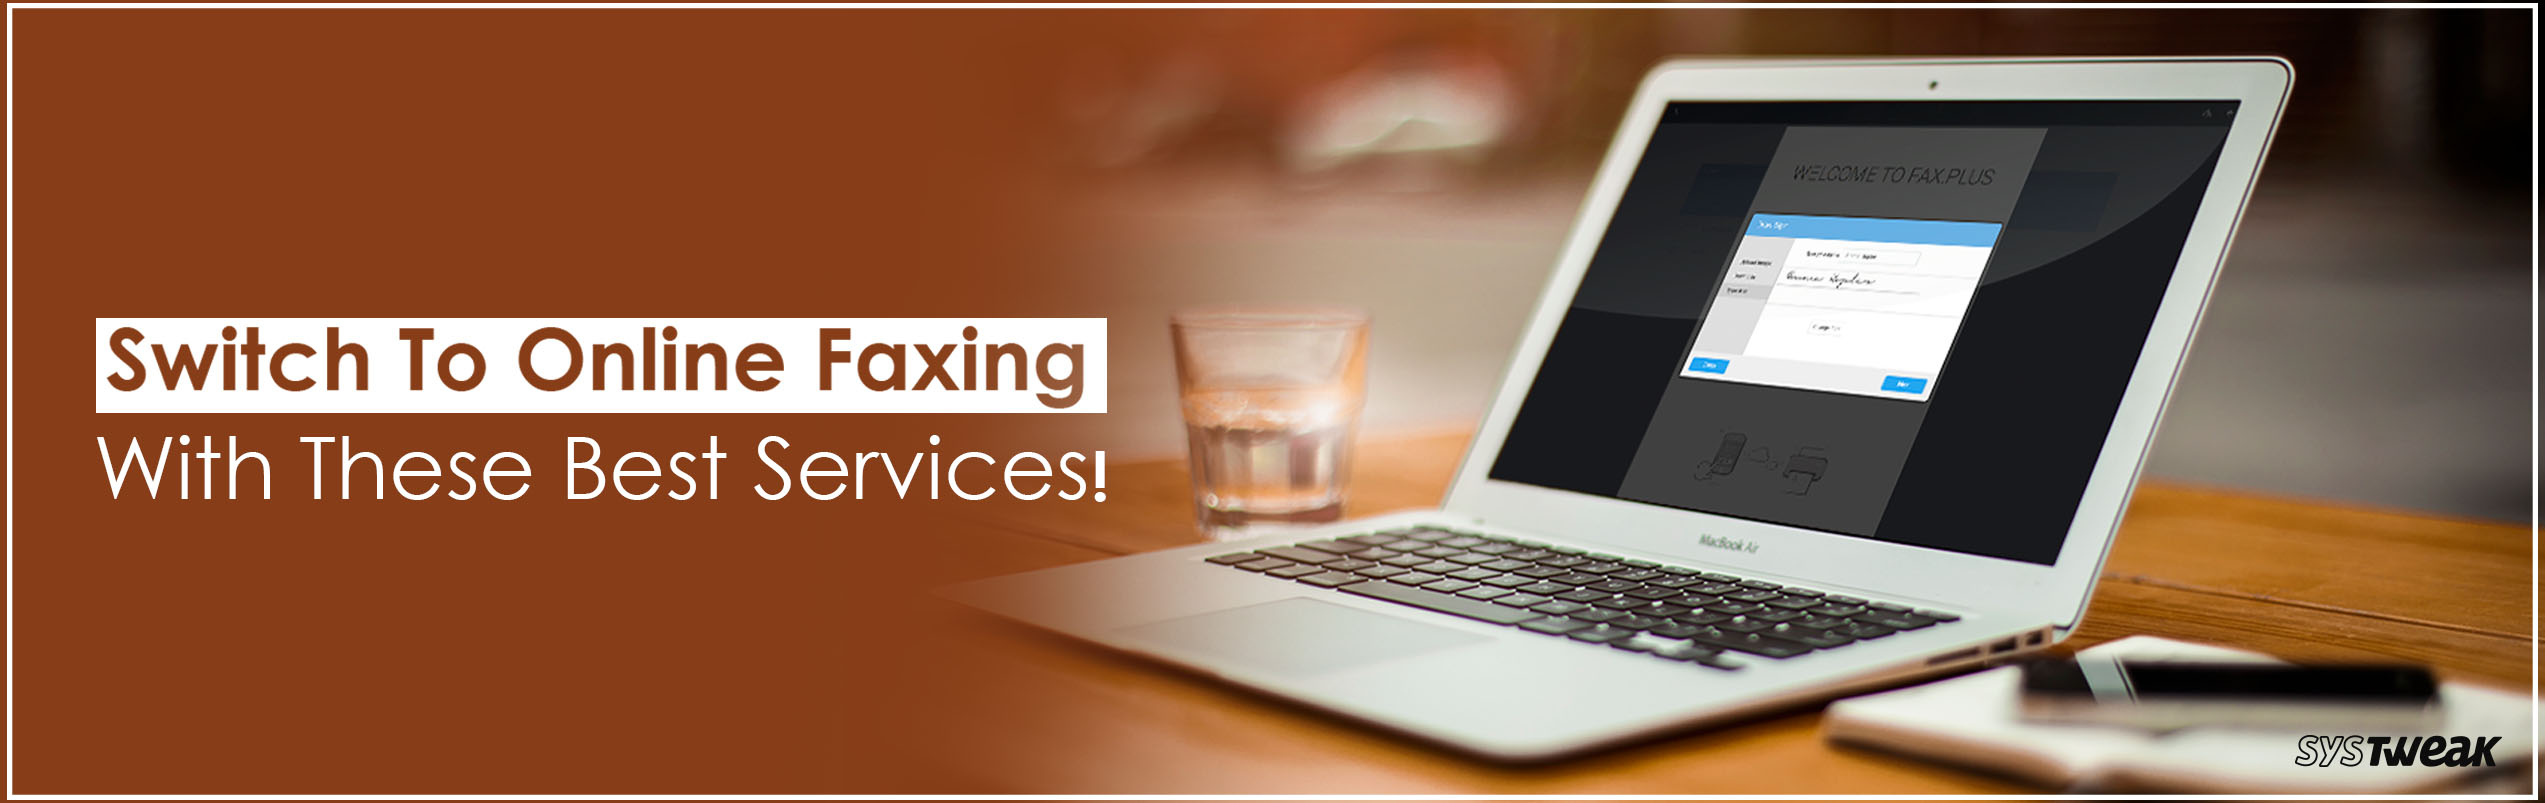 The 5 Best Online Fax Services In 2018